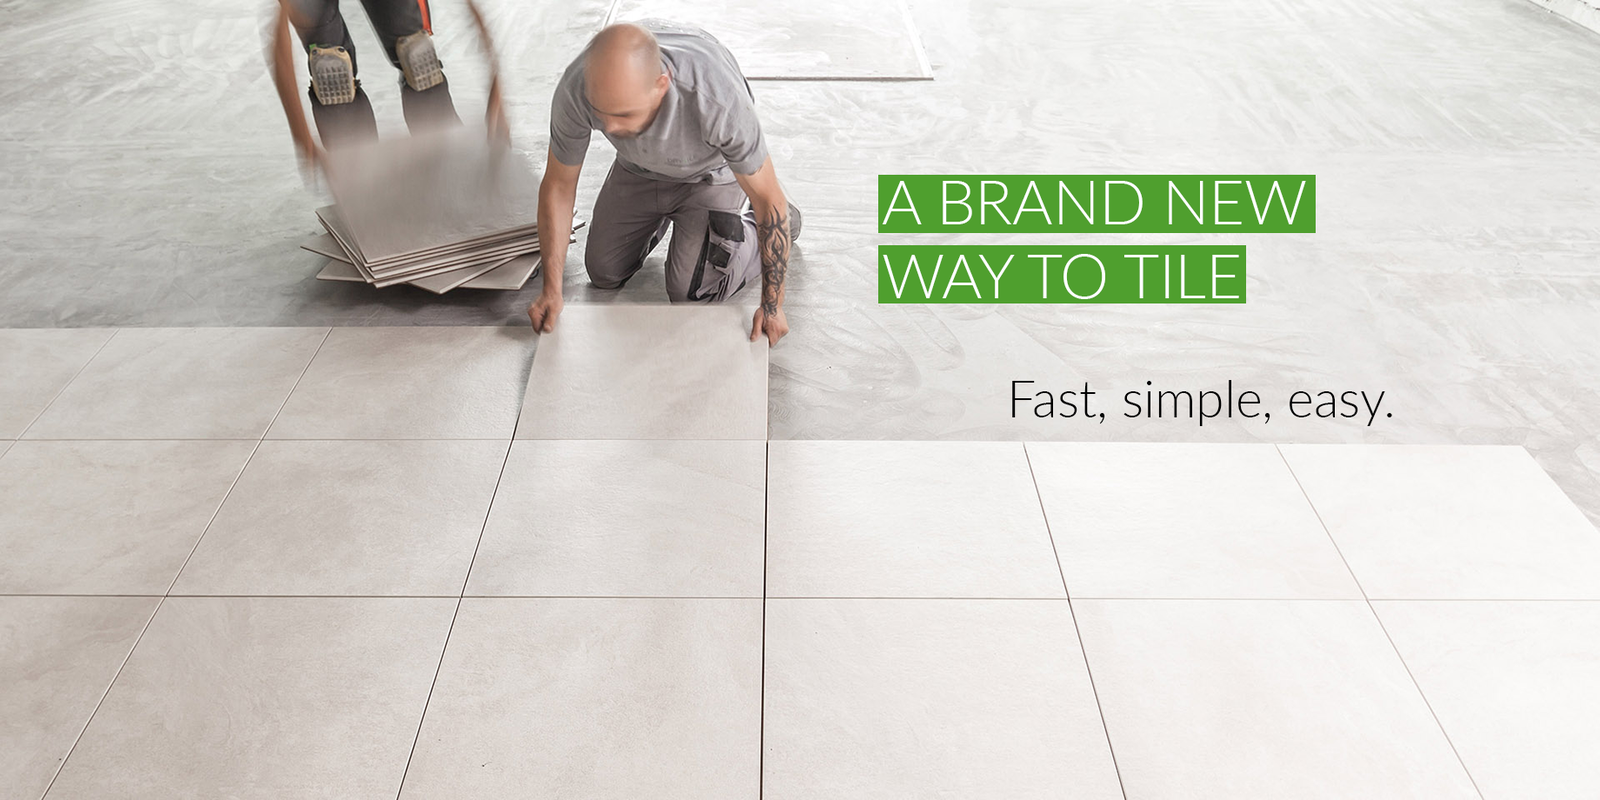 A brand new way to tile. Fast, simple, easy.